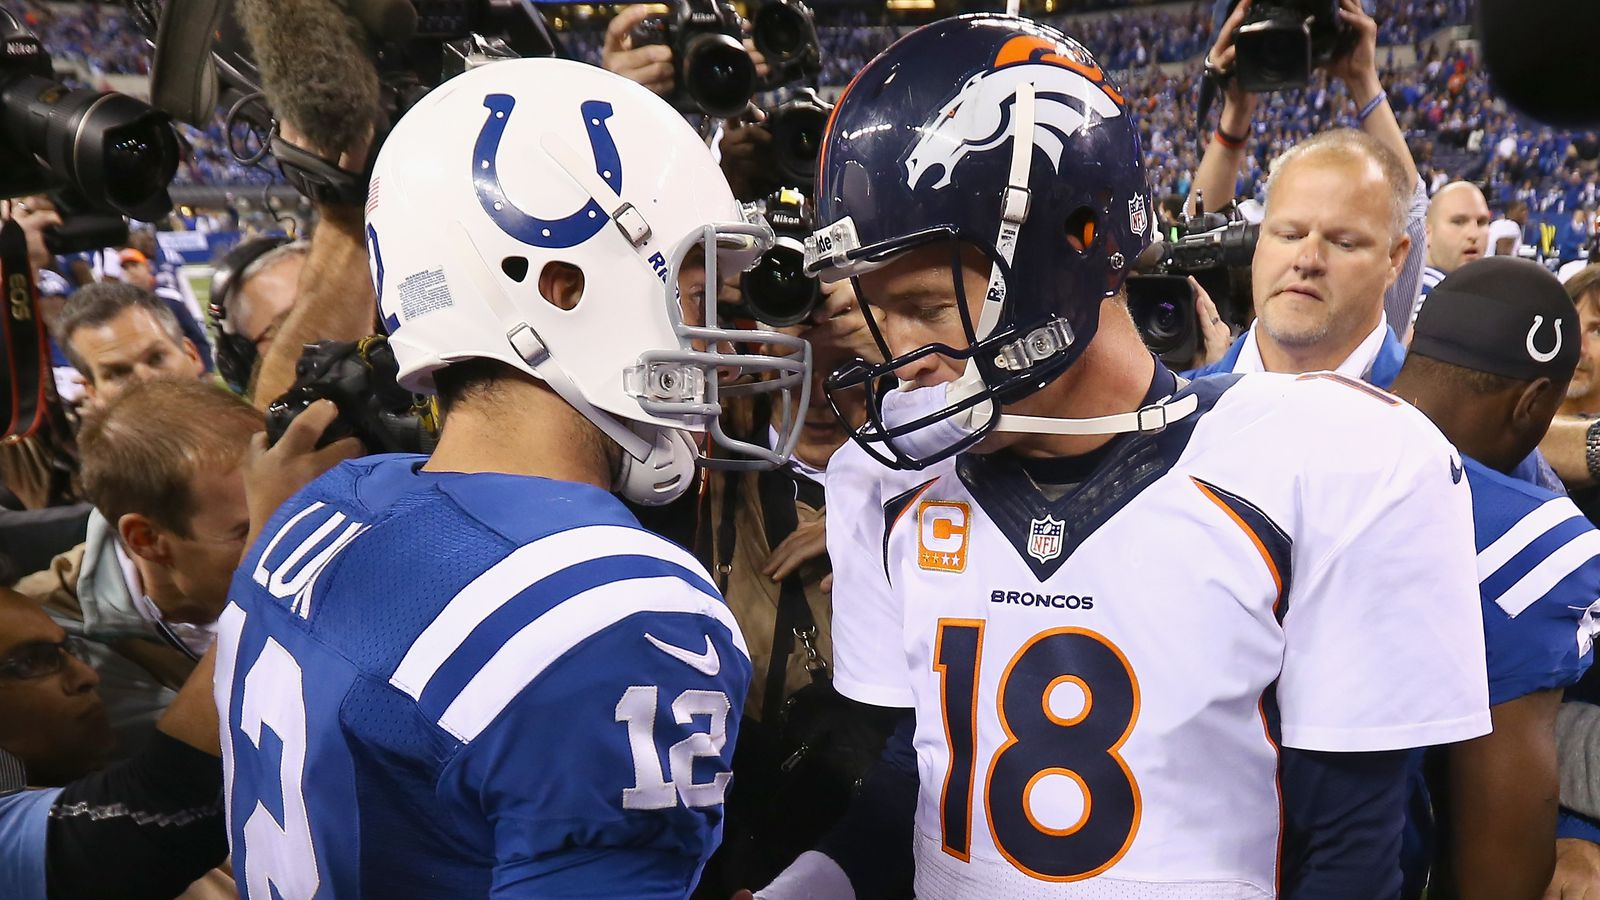 Broncos vs. Colts 2015 live stream: Time, TV schedule and how to watch online ...1600 x 900